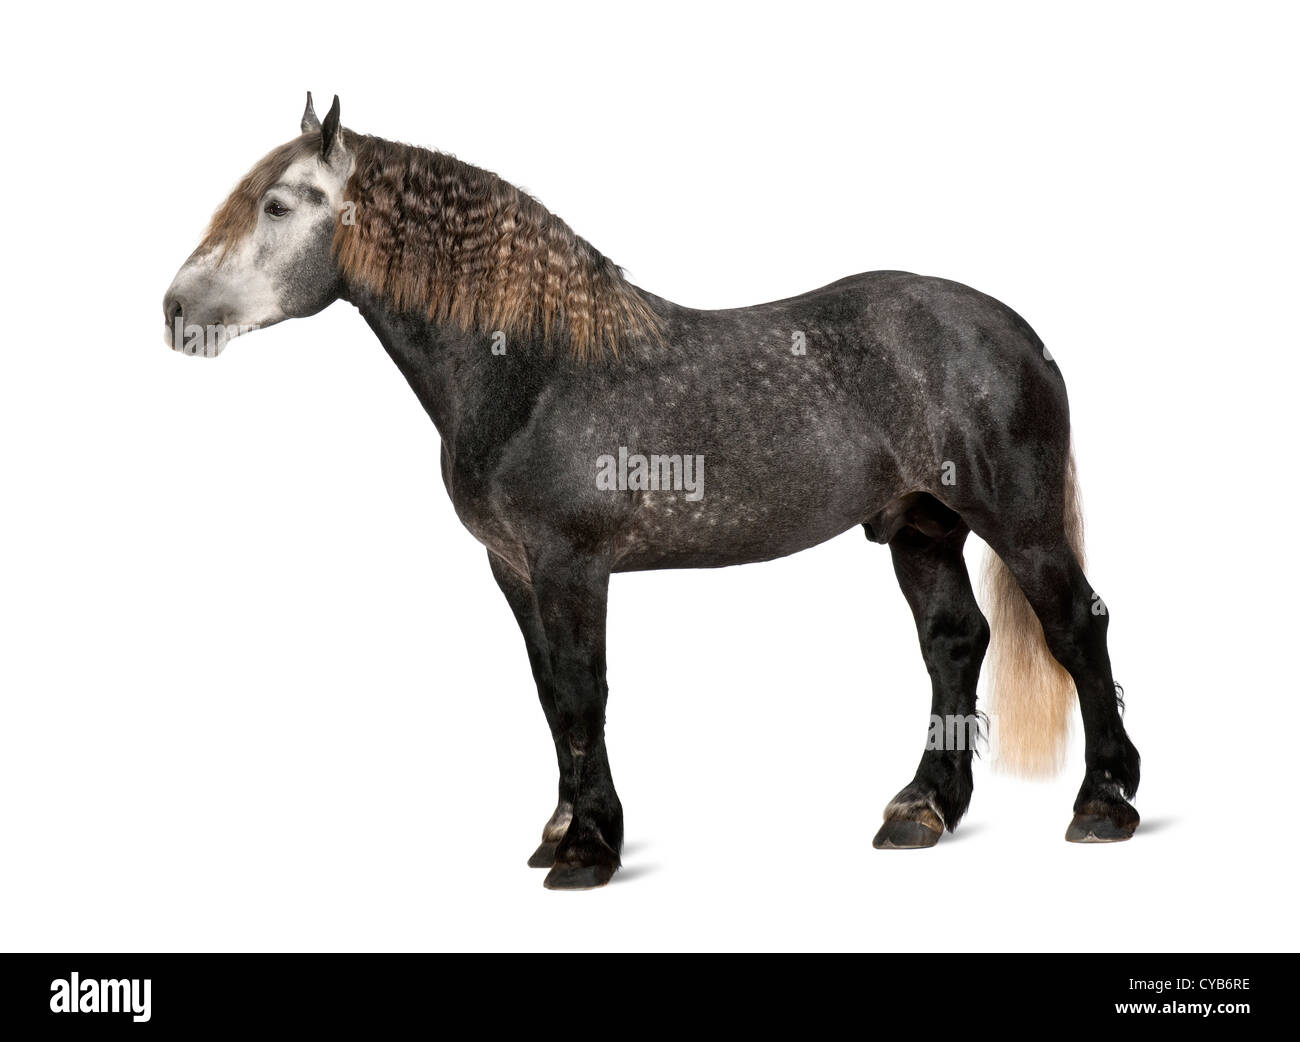 Percheron, 5 years old, a breed of draft horse, standing against white background - Stock Image